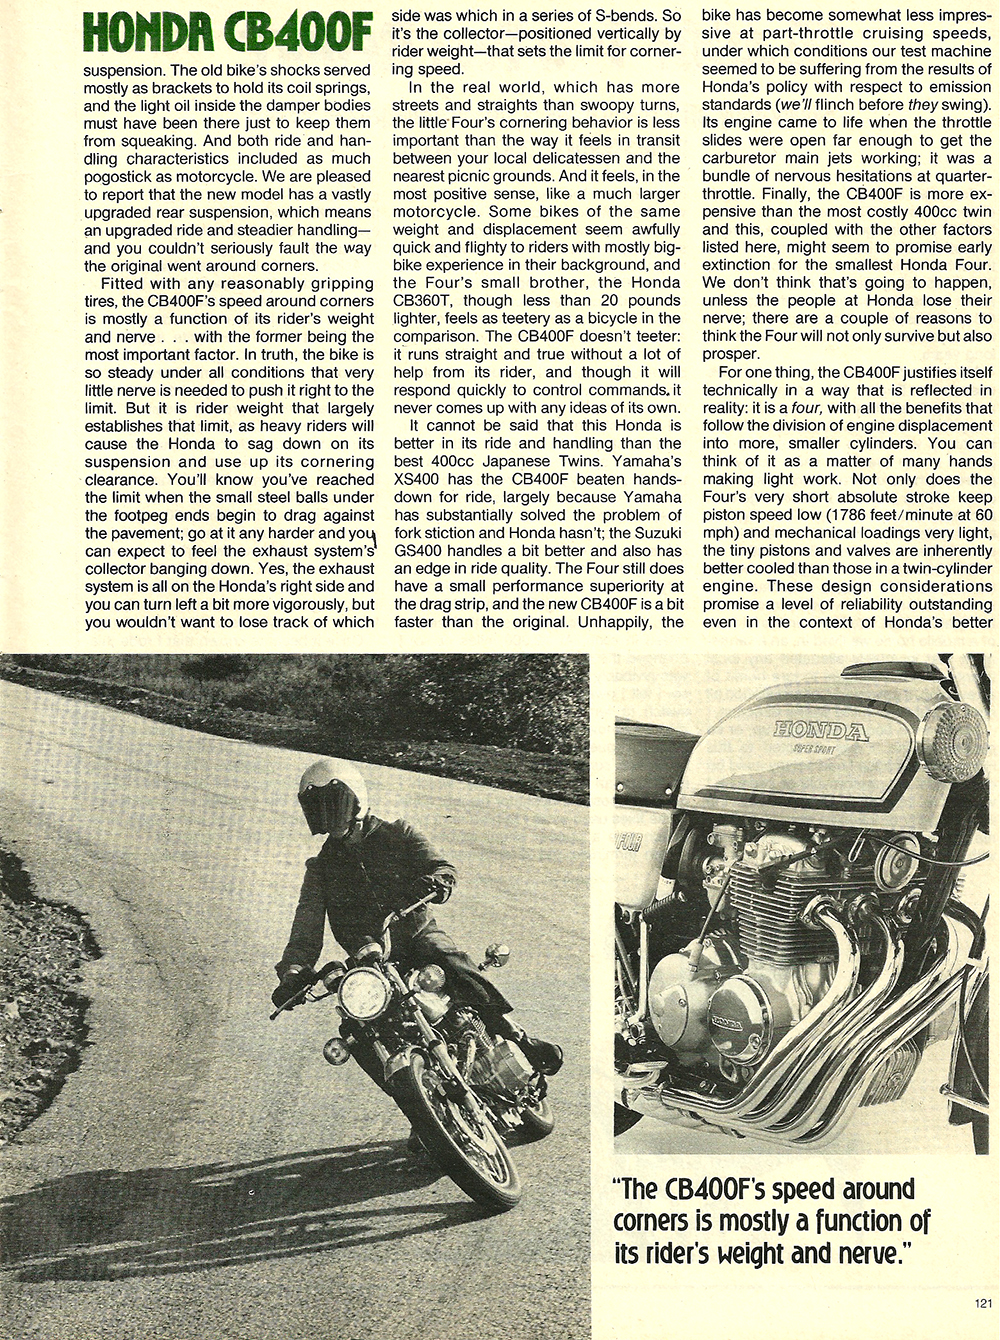 1977 Honda CB400F road test 05.jpg